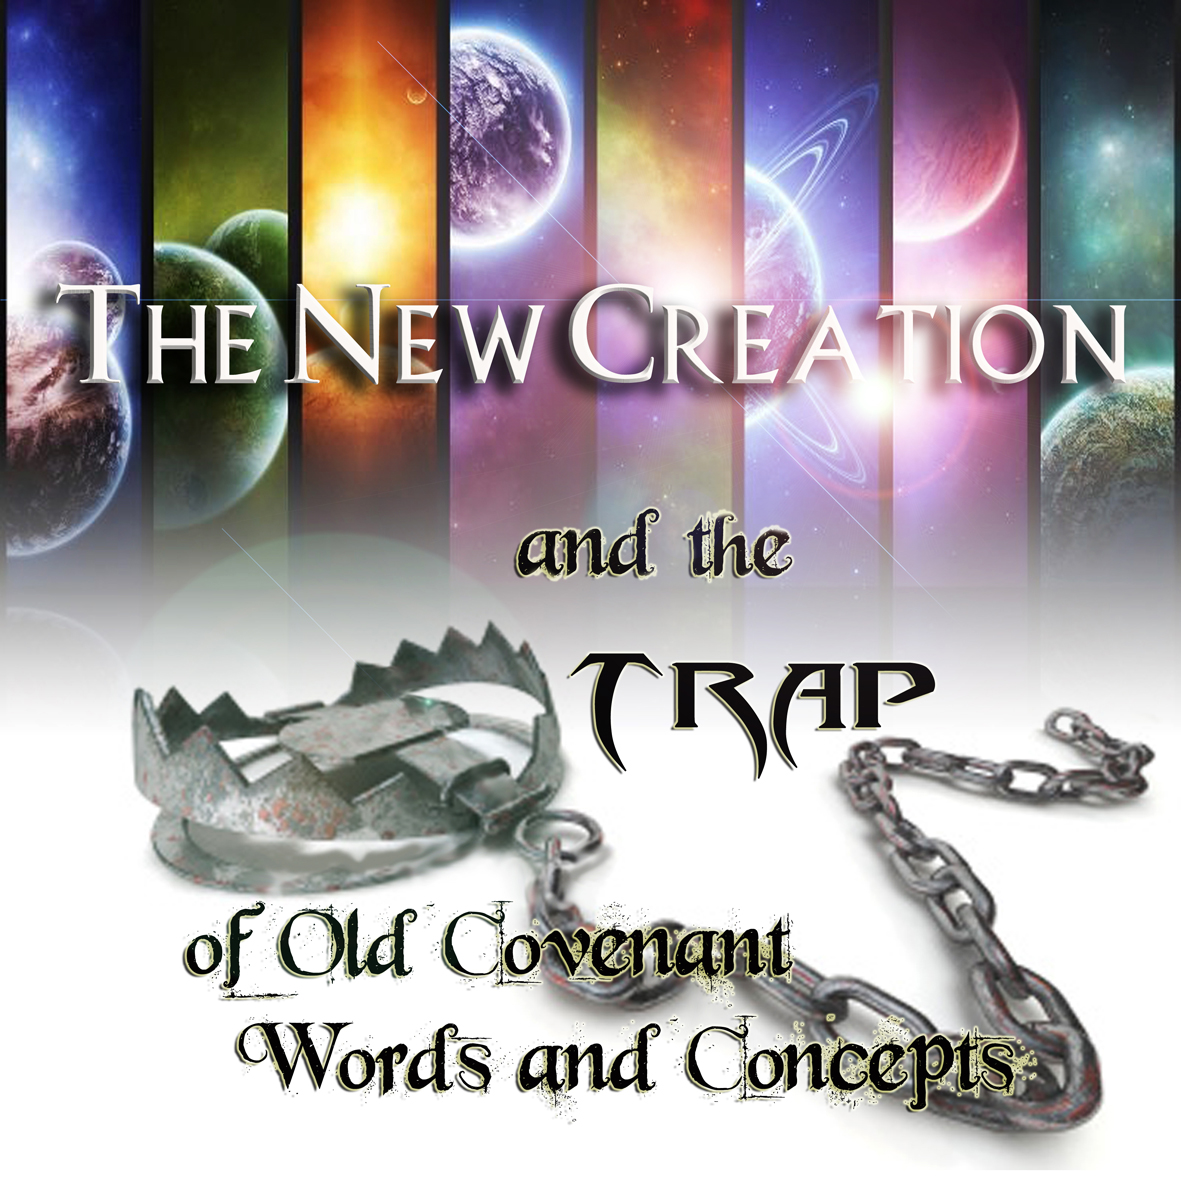 The New Creation and the Trap of Old Covenant Words and Concepts